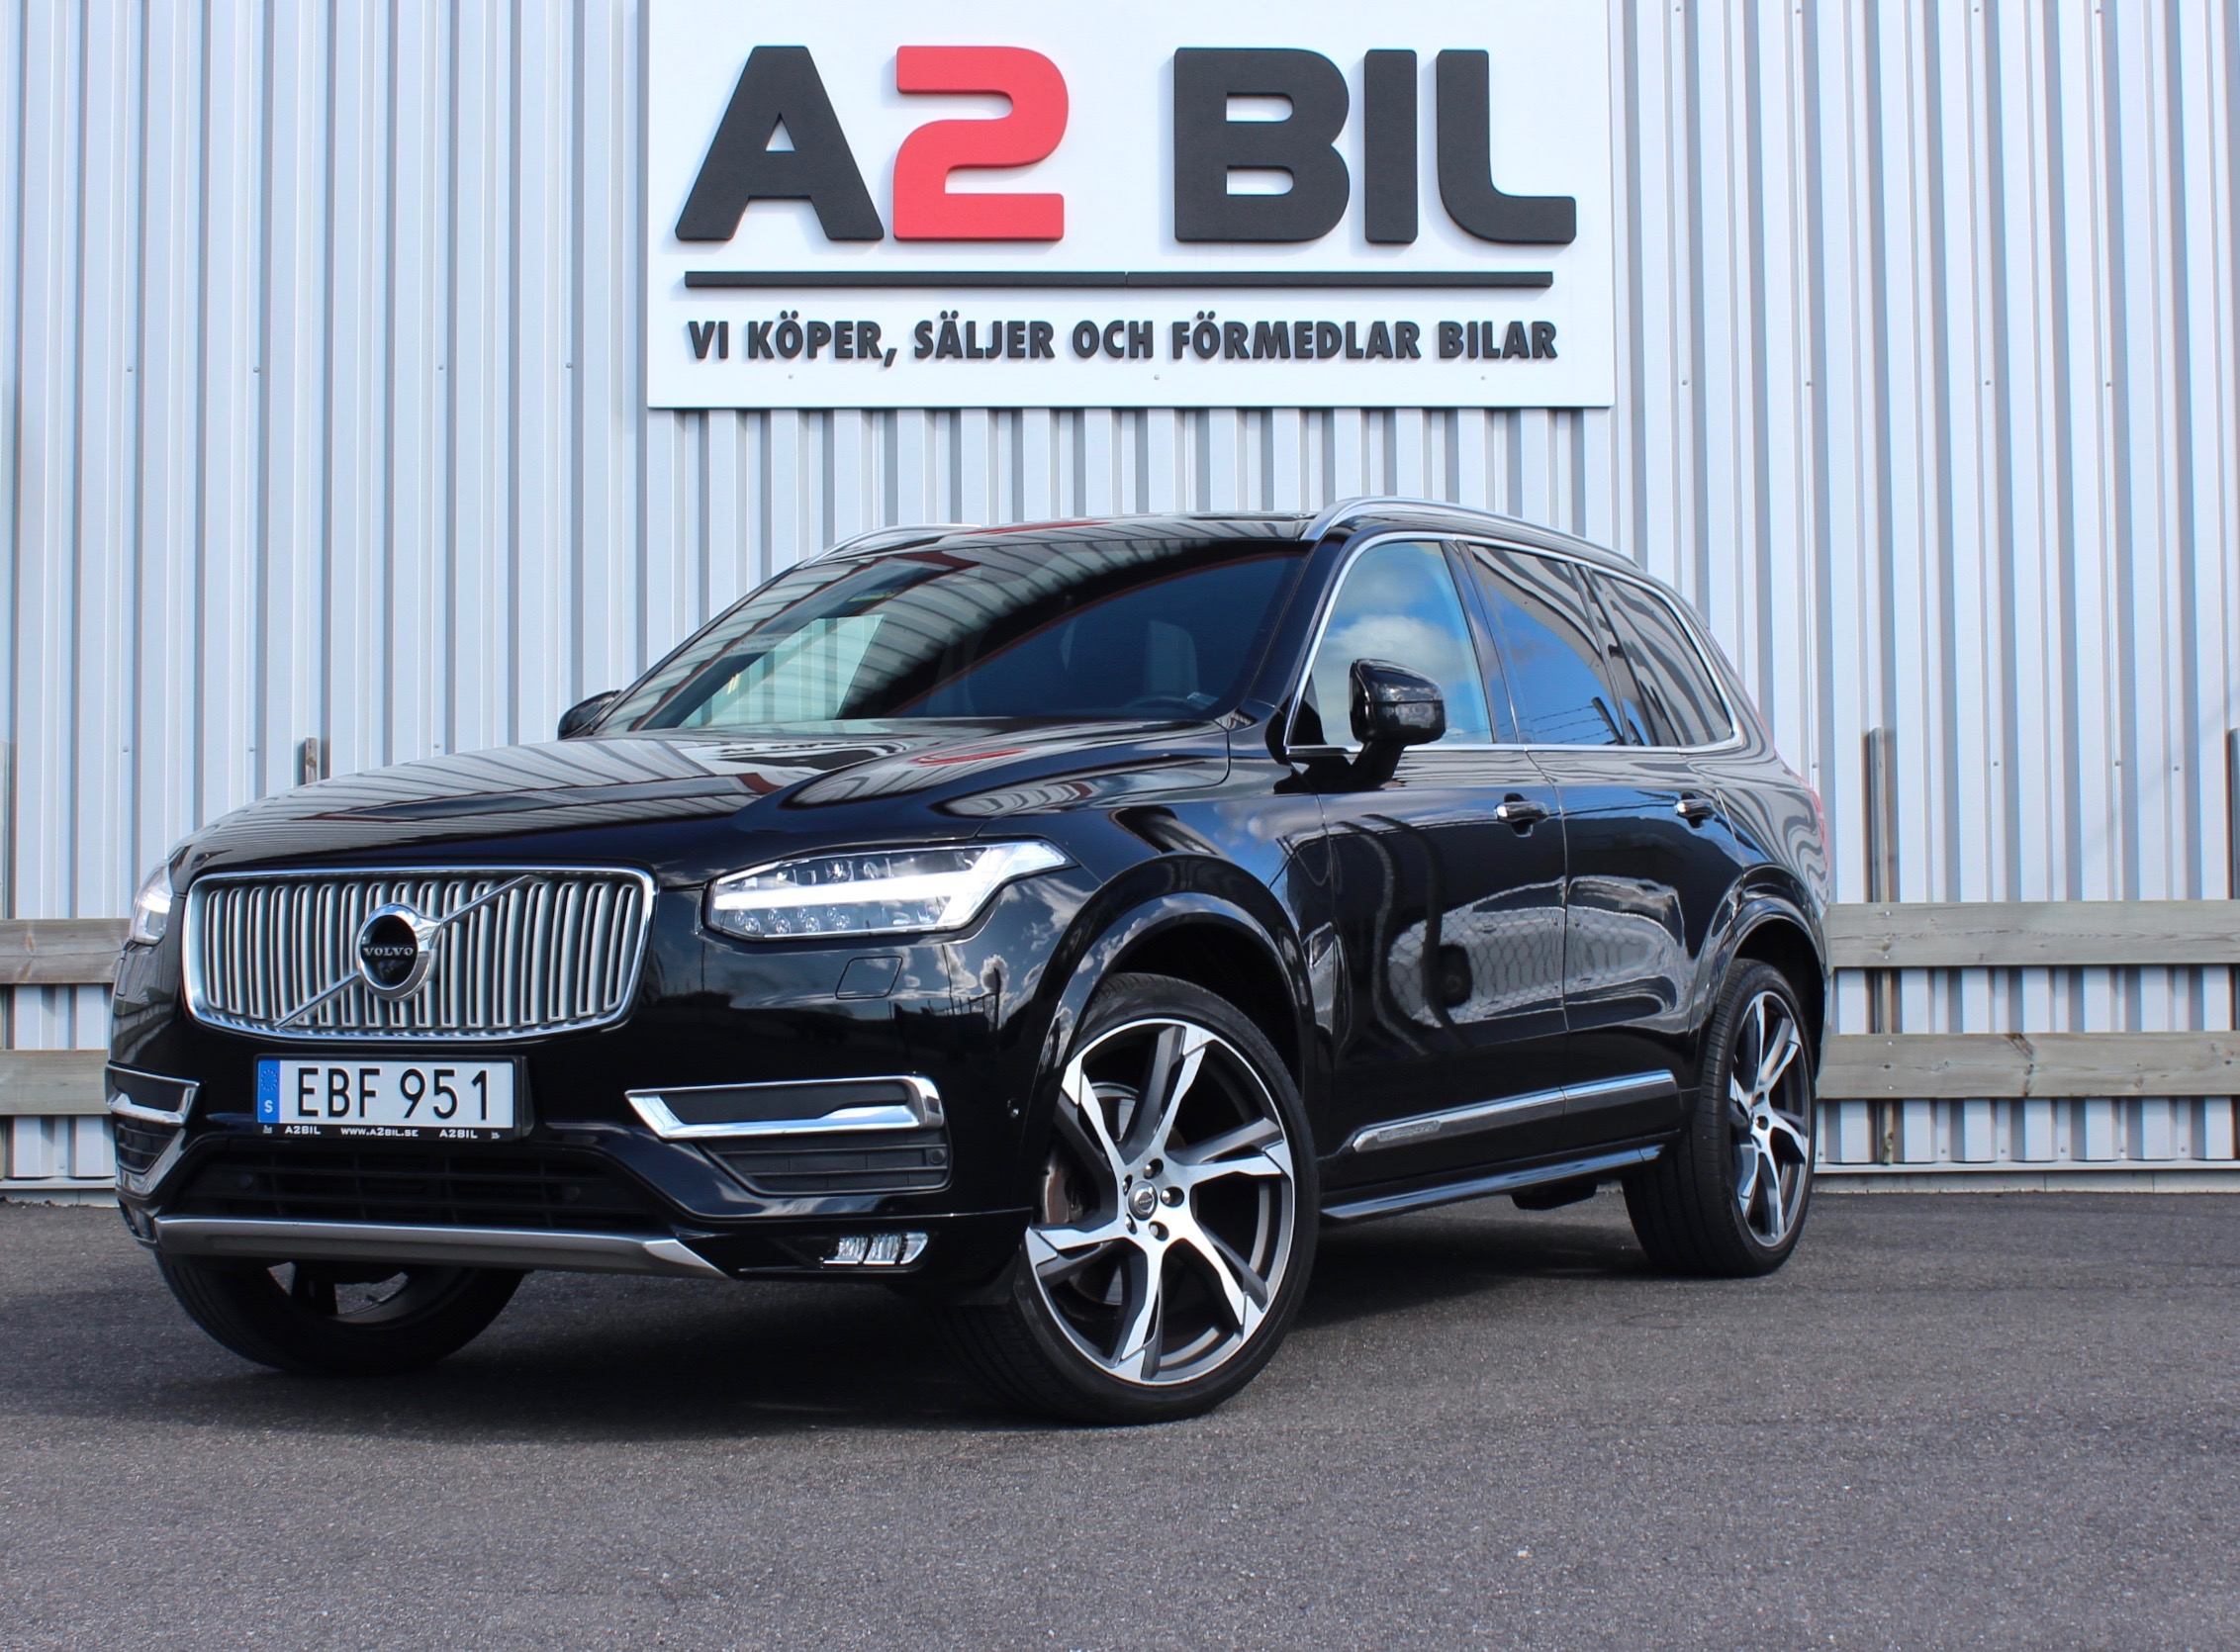 Volvo XC90 D5 AWD Inscription 360-Kamera Euro 6 235hk